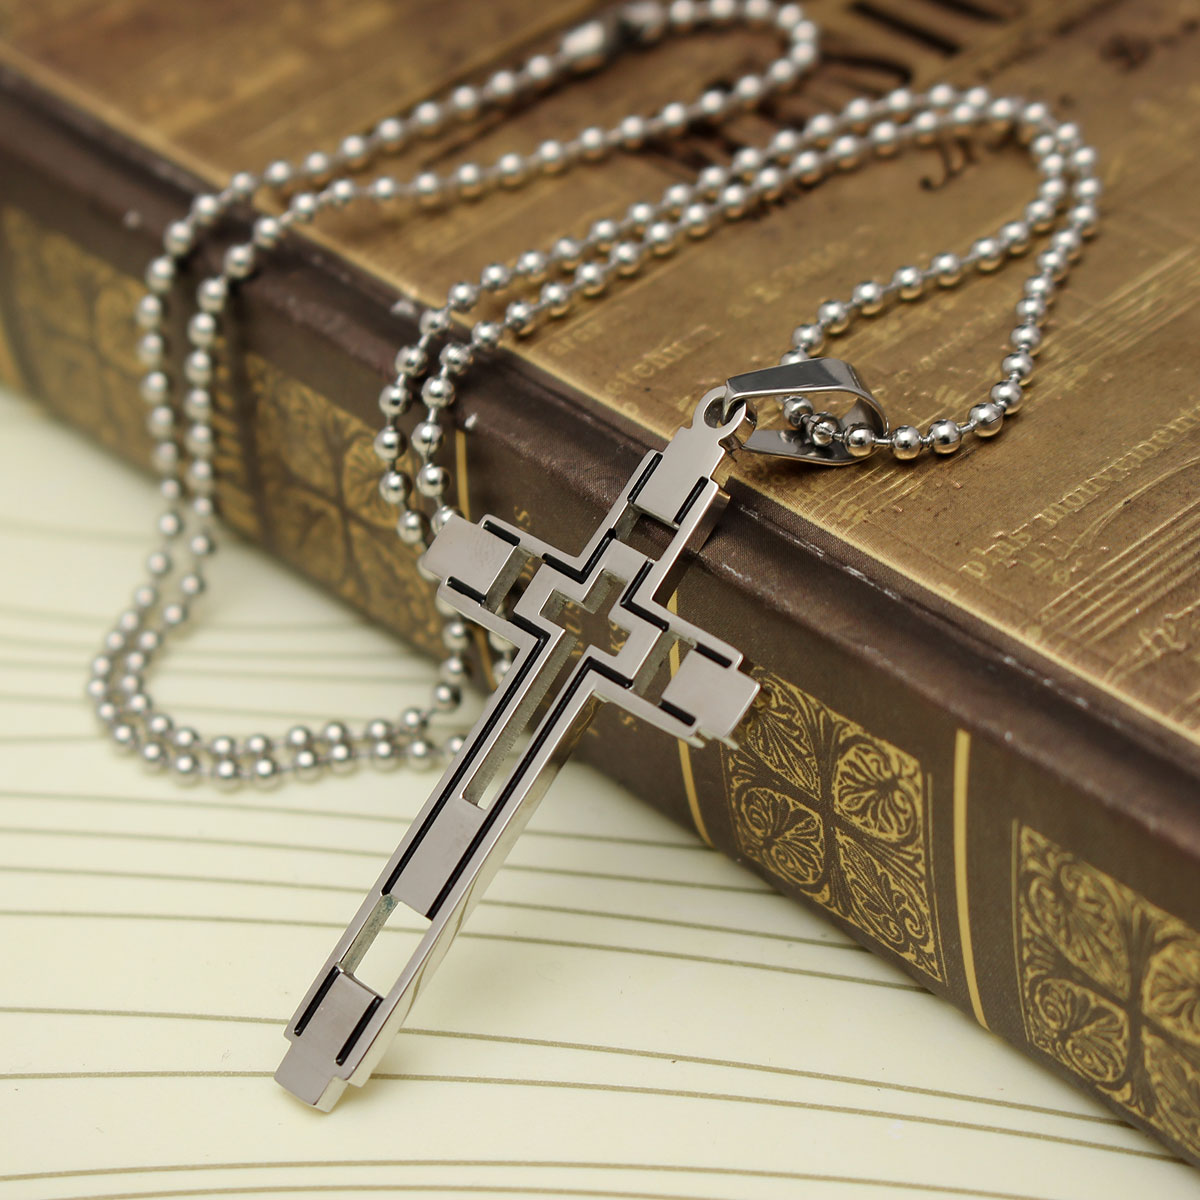 Silver Cross Pendant Chain Unisex Charm Stainless Steel Necklace